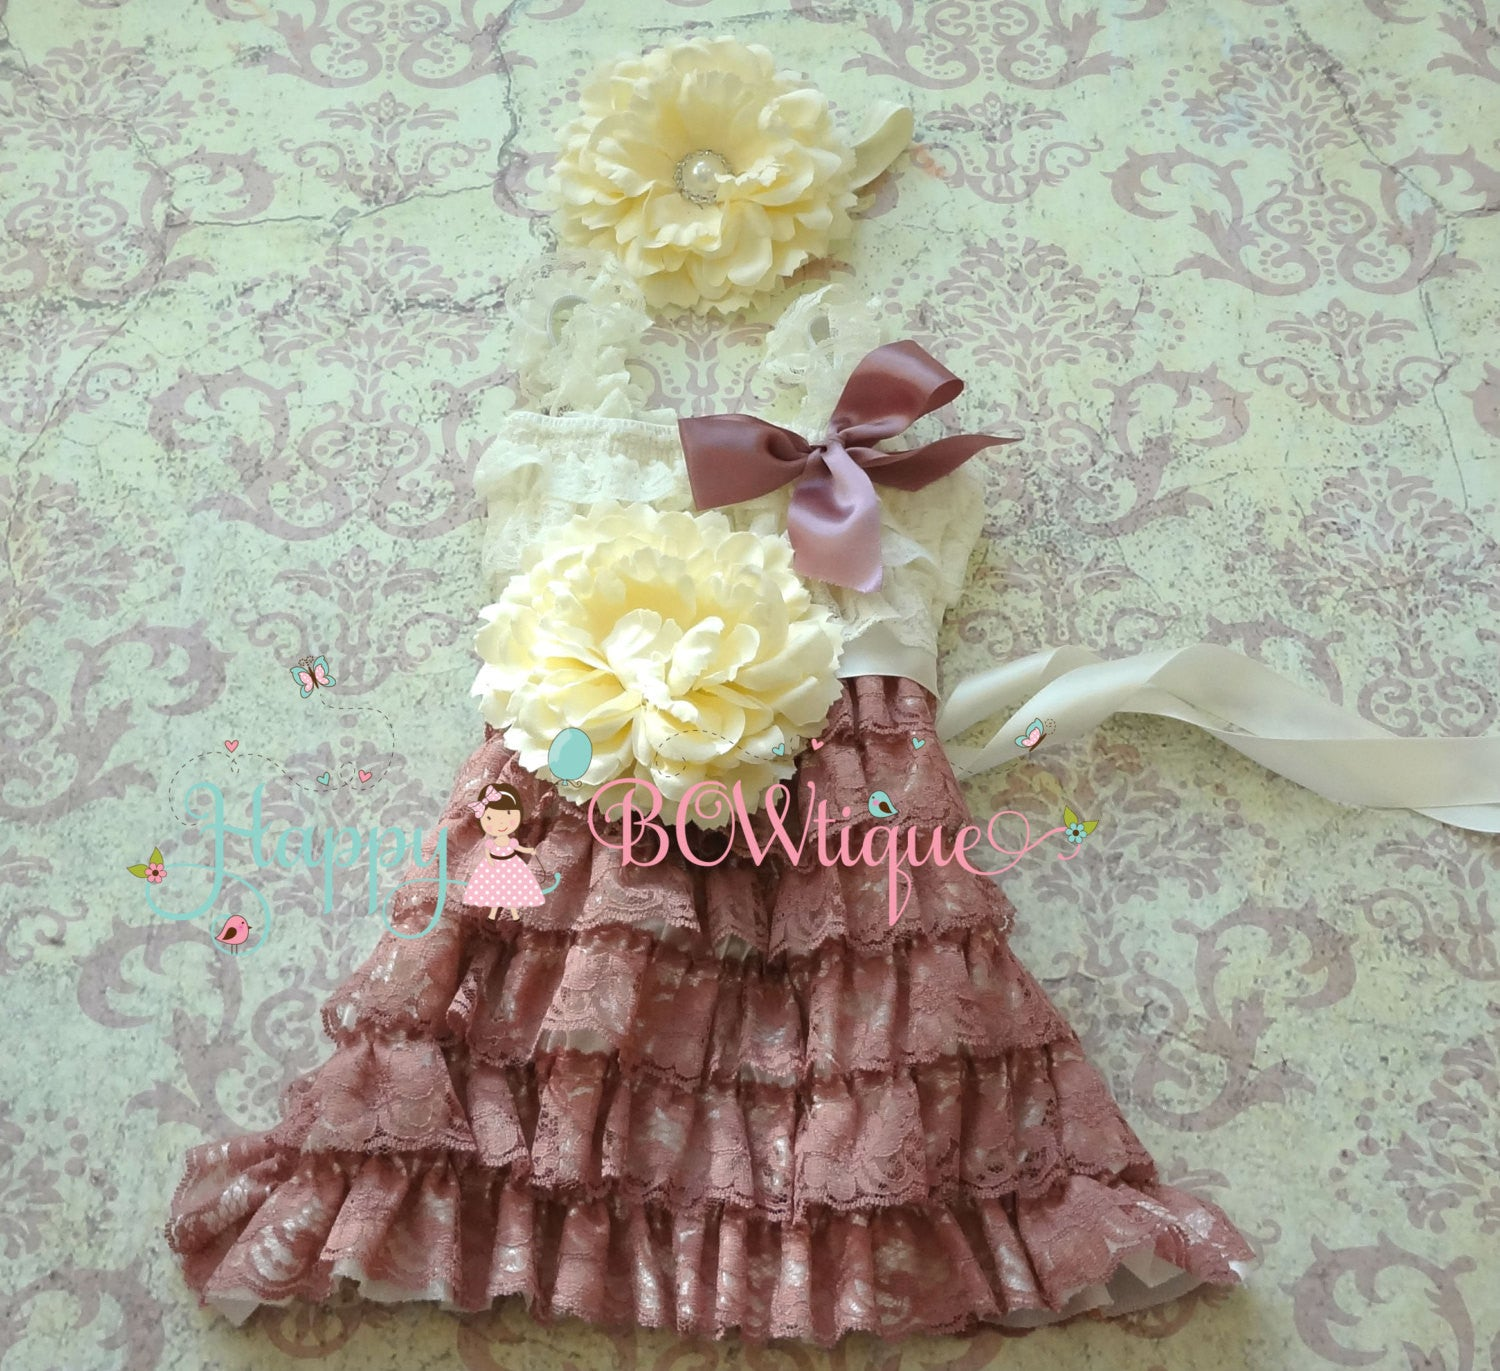 Girl's Dusty Rose Dress/ Girl's Dusty Ivory Rose Flower Lace Dress set - Happy BOWtique - children's clothing, Baby Girl clothing